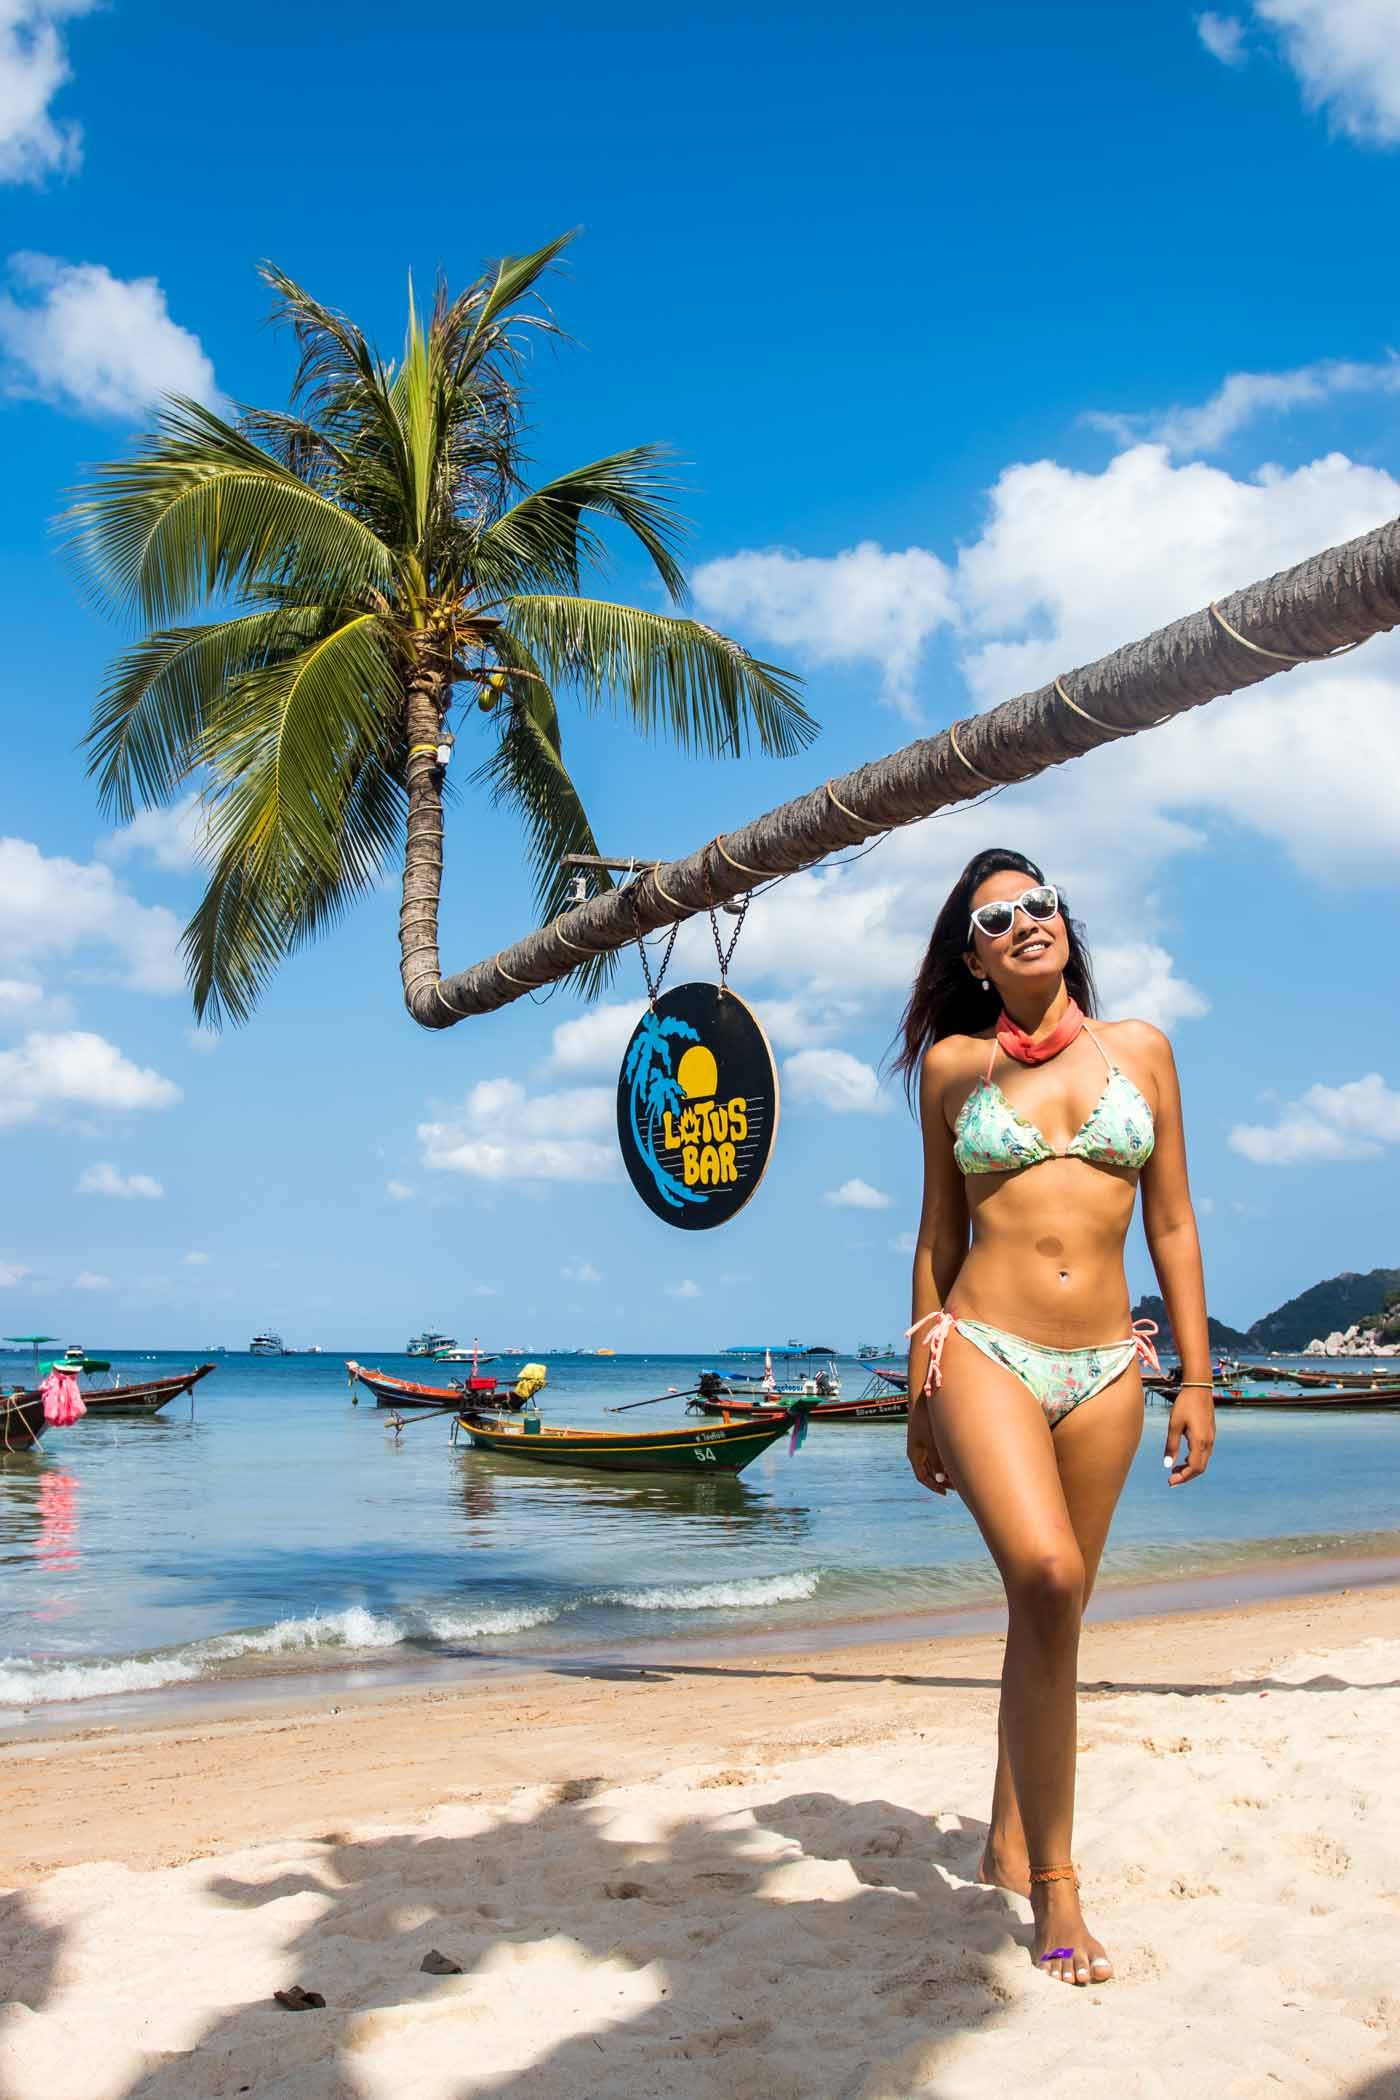 Koh_Tao_Thailand_Surat_Thani_Travel_Blog_Asia_Island_Hopping_Indian_Blogger_Hiking_Beach_Sailing_Scuba_Diving_Adventure_Exploring_Vegan_vegetarian_Cafe_Food_Guide_Muay_Tai_Fitness_boxing_Fight_Club_Koh_Nang_Yung_Island_Hopping